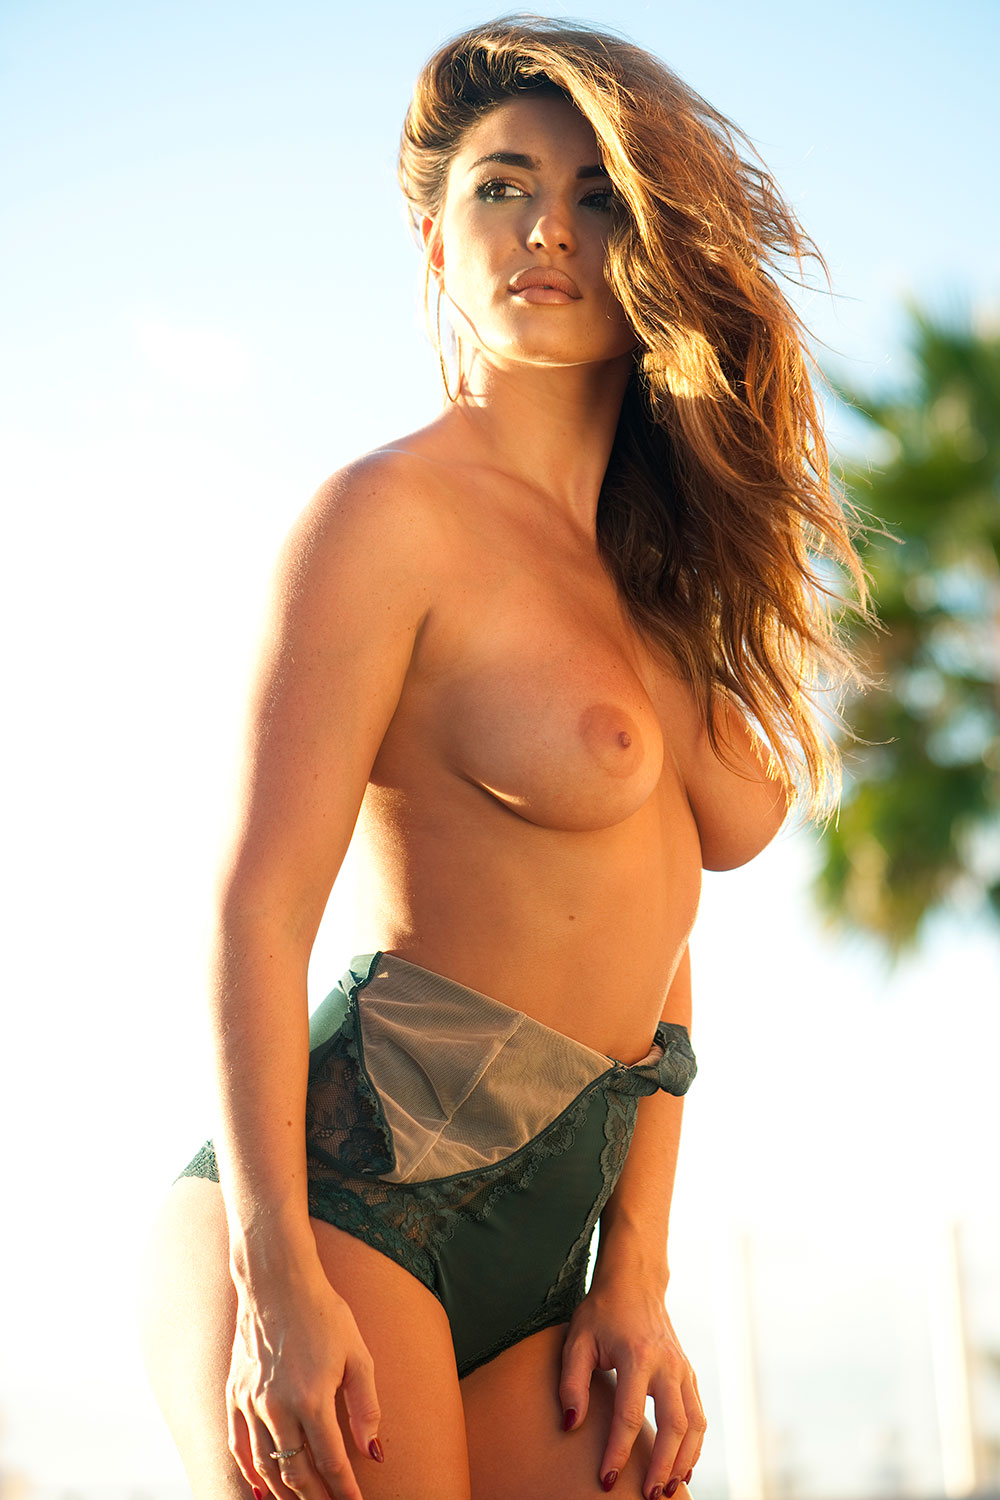 Topless Pics Of India Rey...